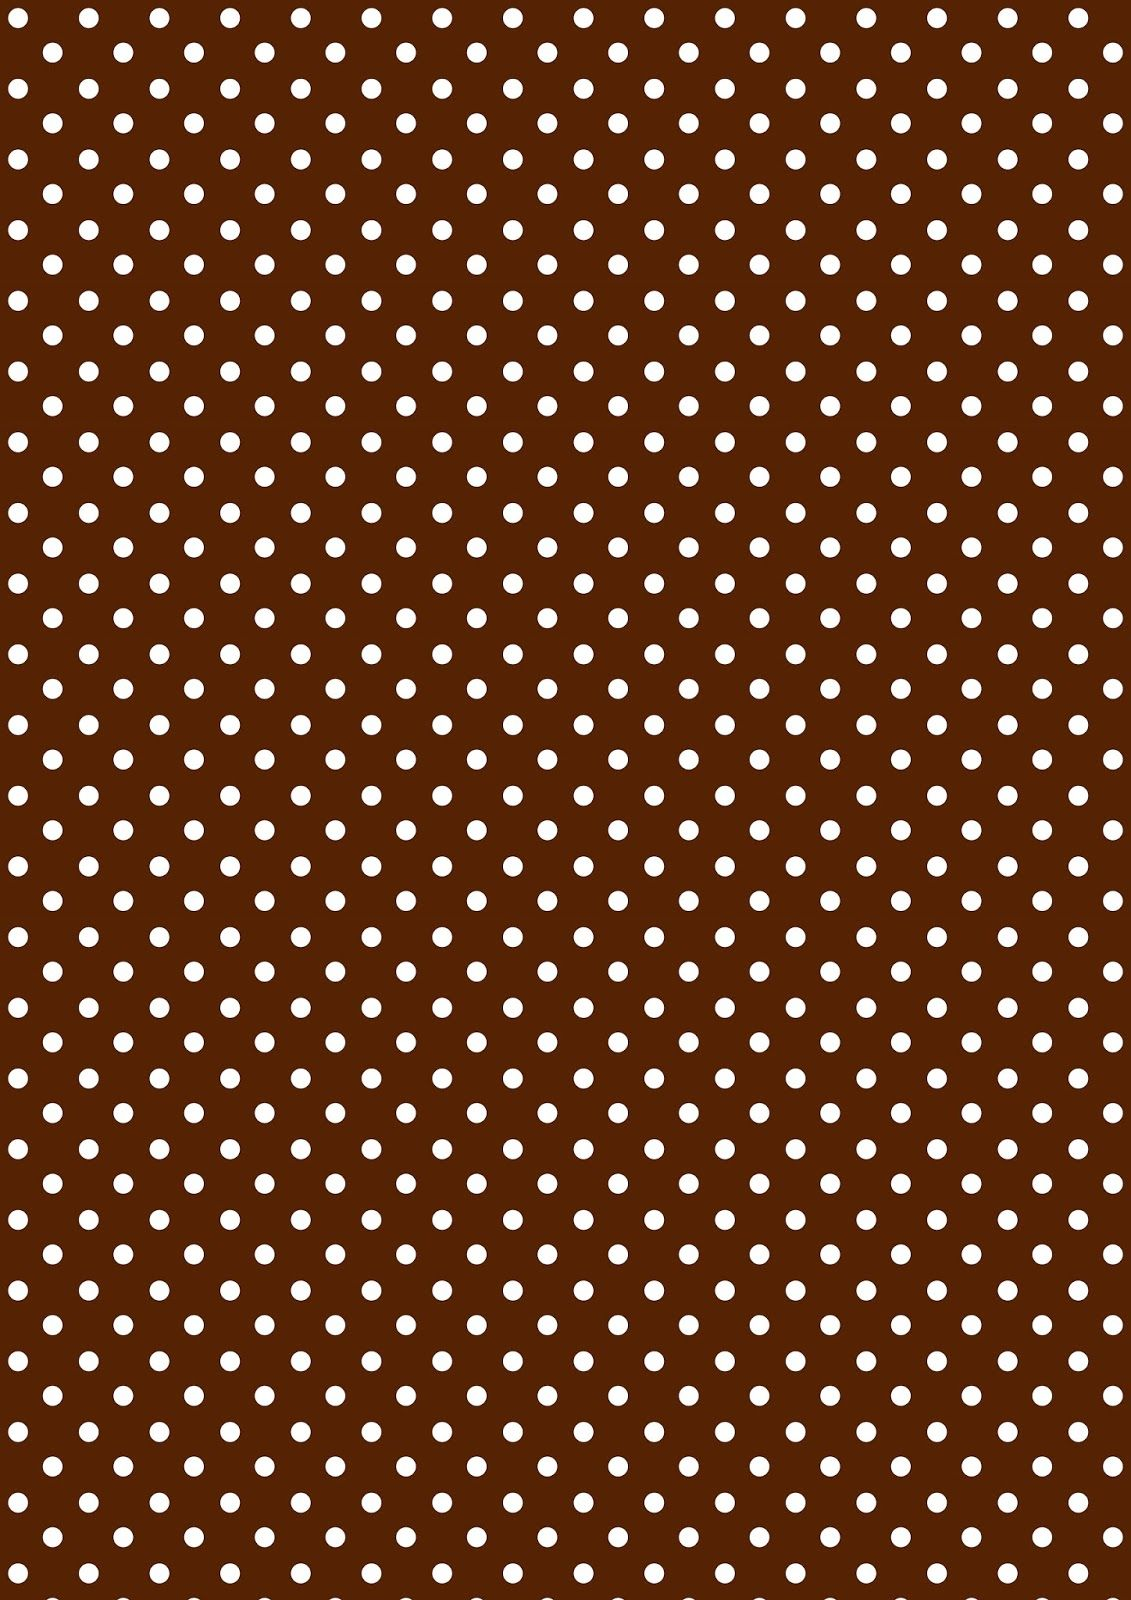 Free Printable Polka Dot Pattern Paper   Chocolate Brown And